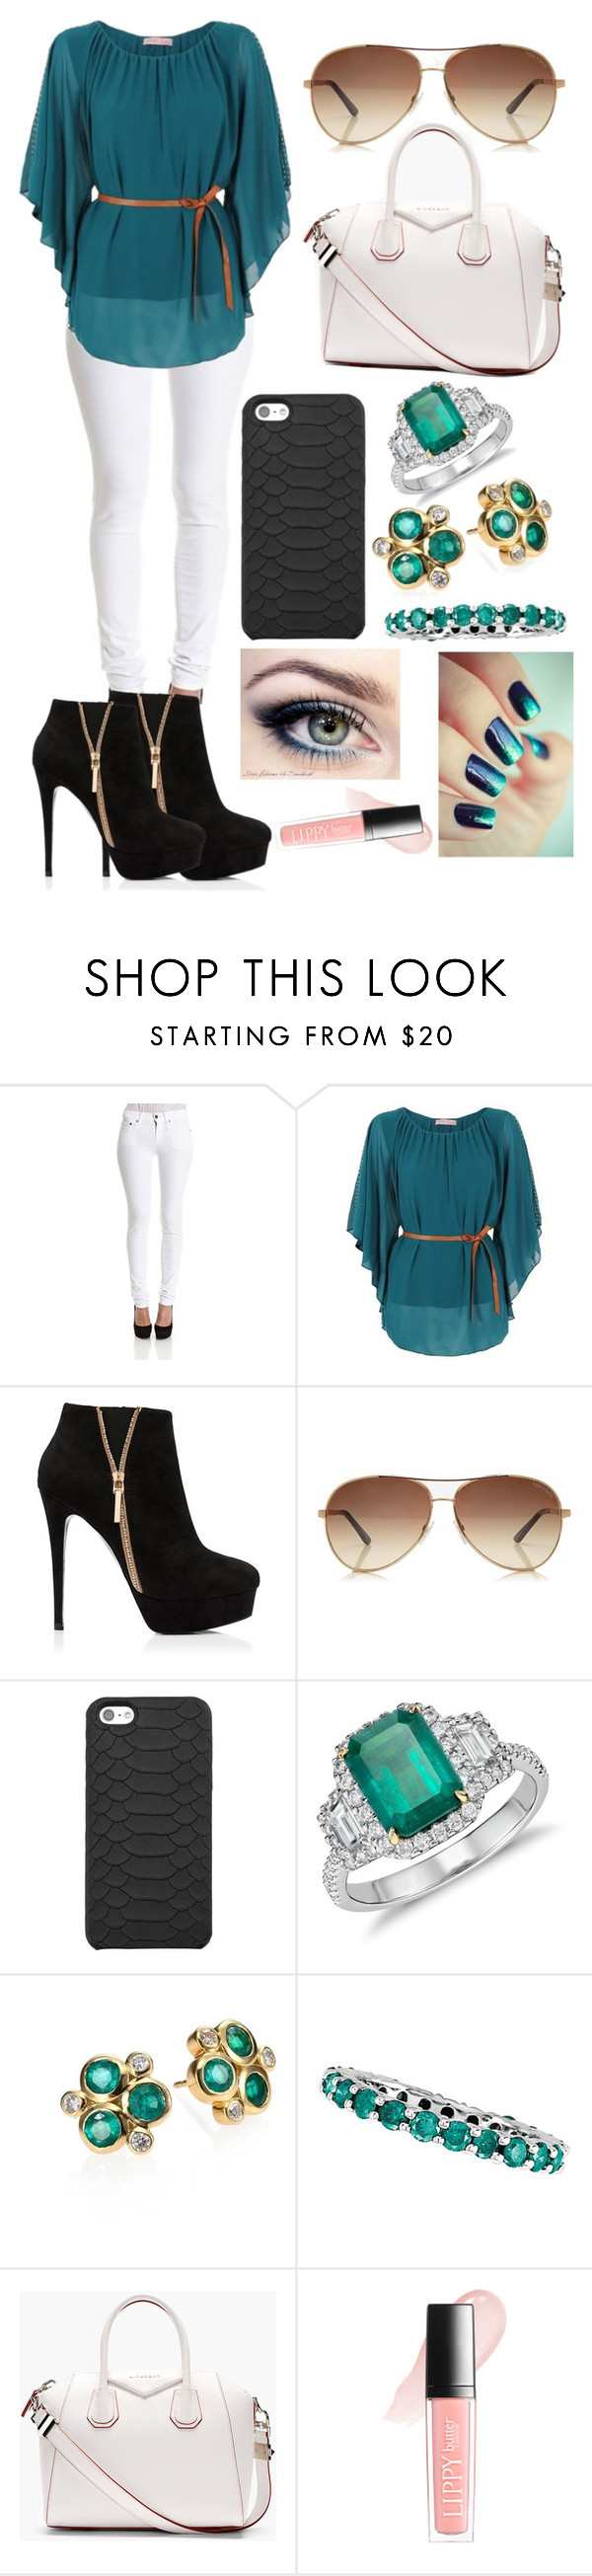 """""""untitle #13"""" by jsaraid ❤ liked on Polyvore featuring Ralph Lauren, Forever New, Tom Ford, GiGi New York, Blue Nile, Temple St. Clair, Morris & David, Givenchy and Butter London"""